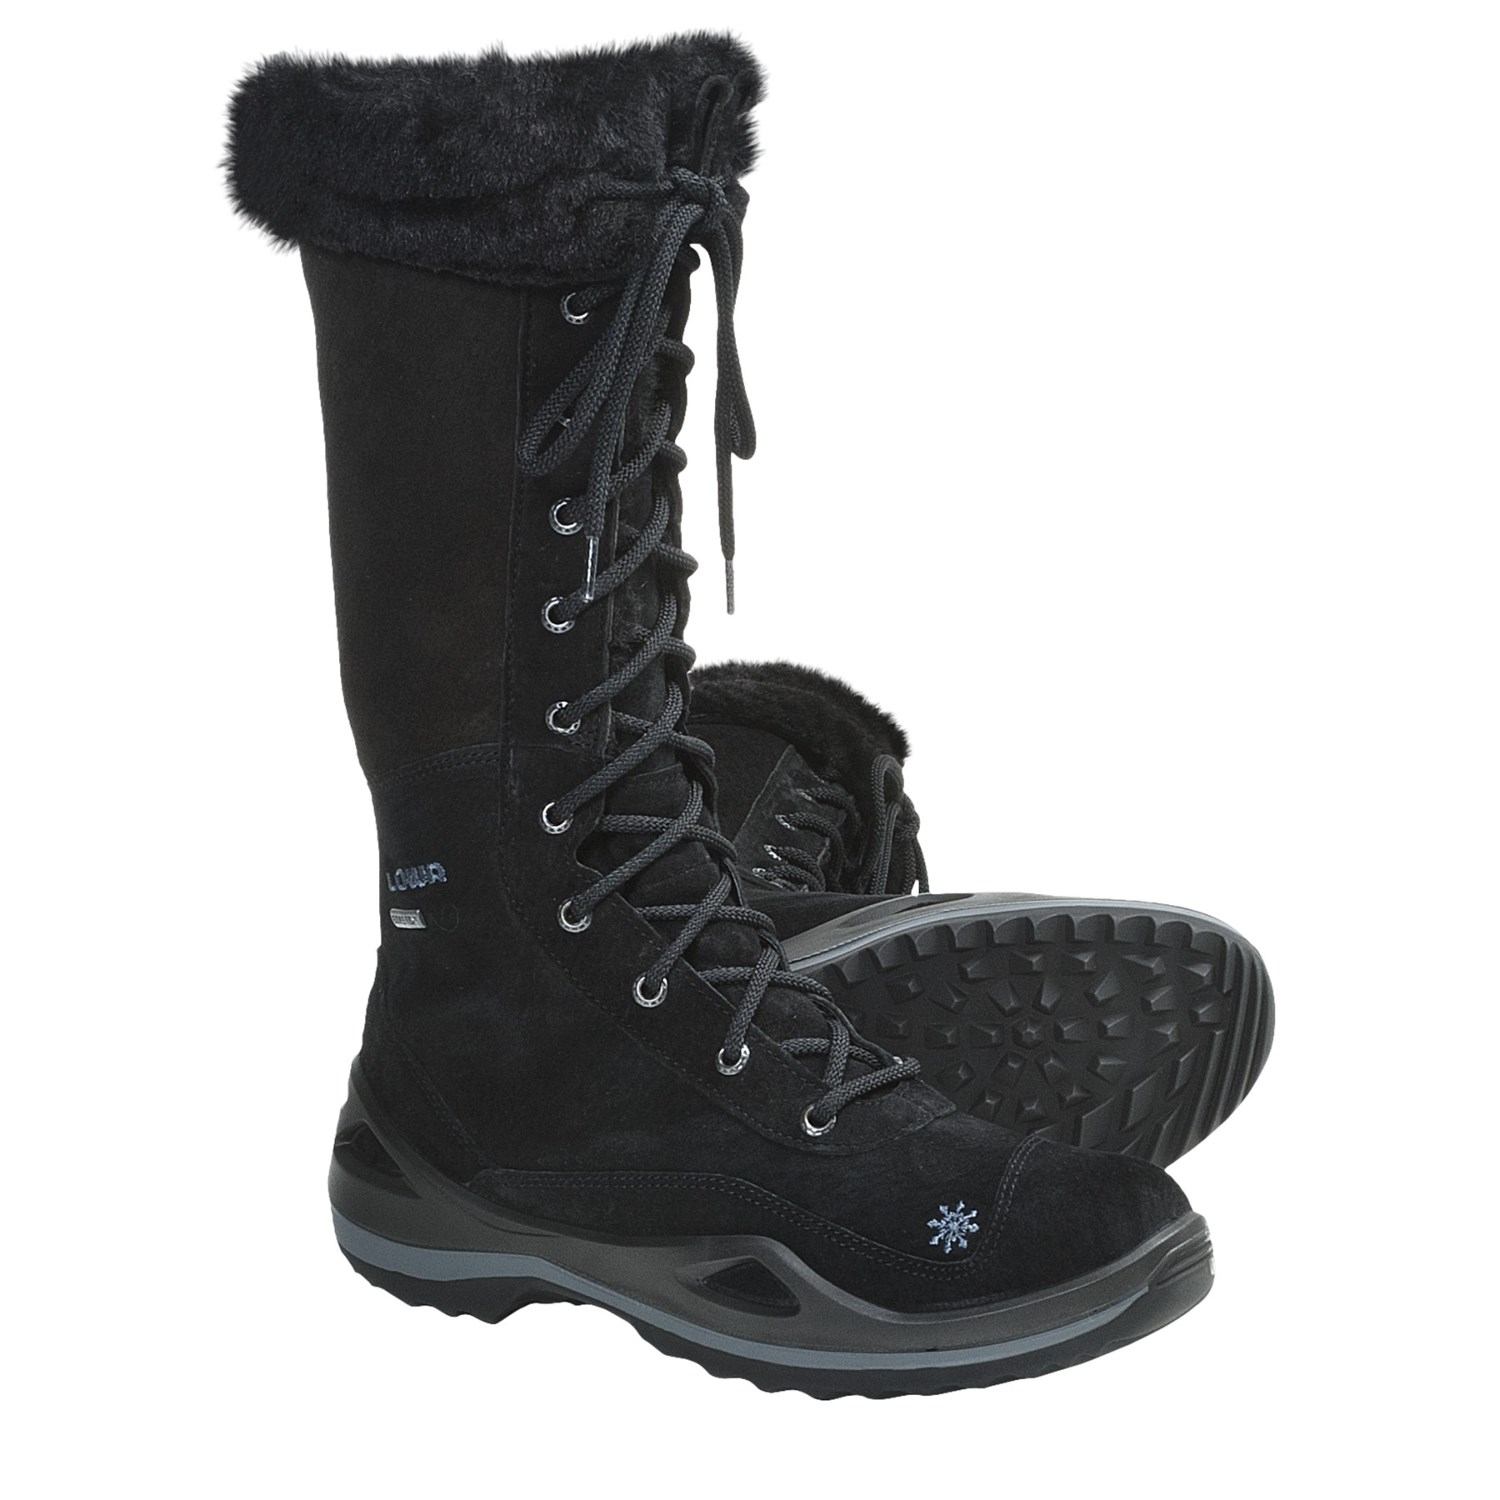 Model Gore Tex Hiking Boots Waterproof For Women In Black Black Pictures To